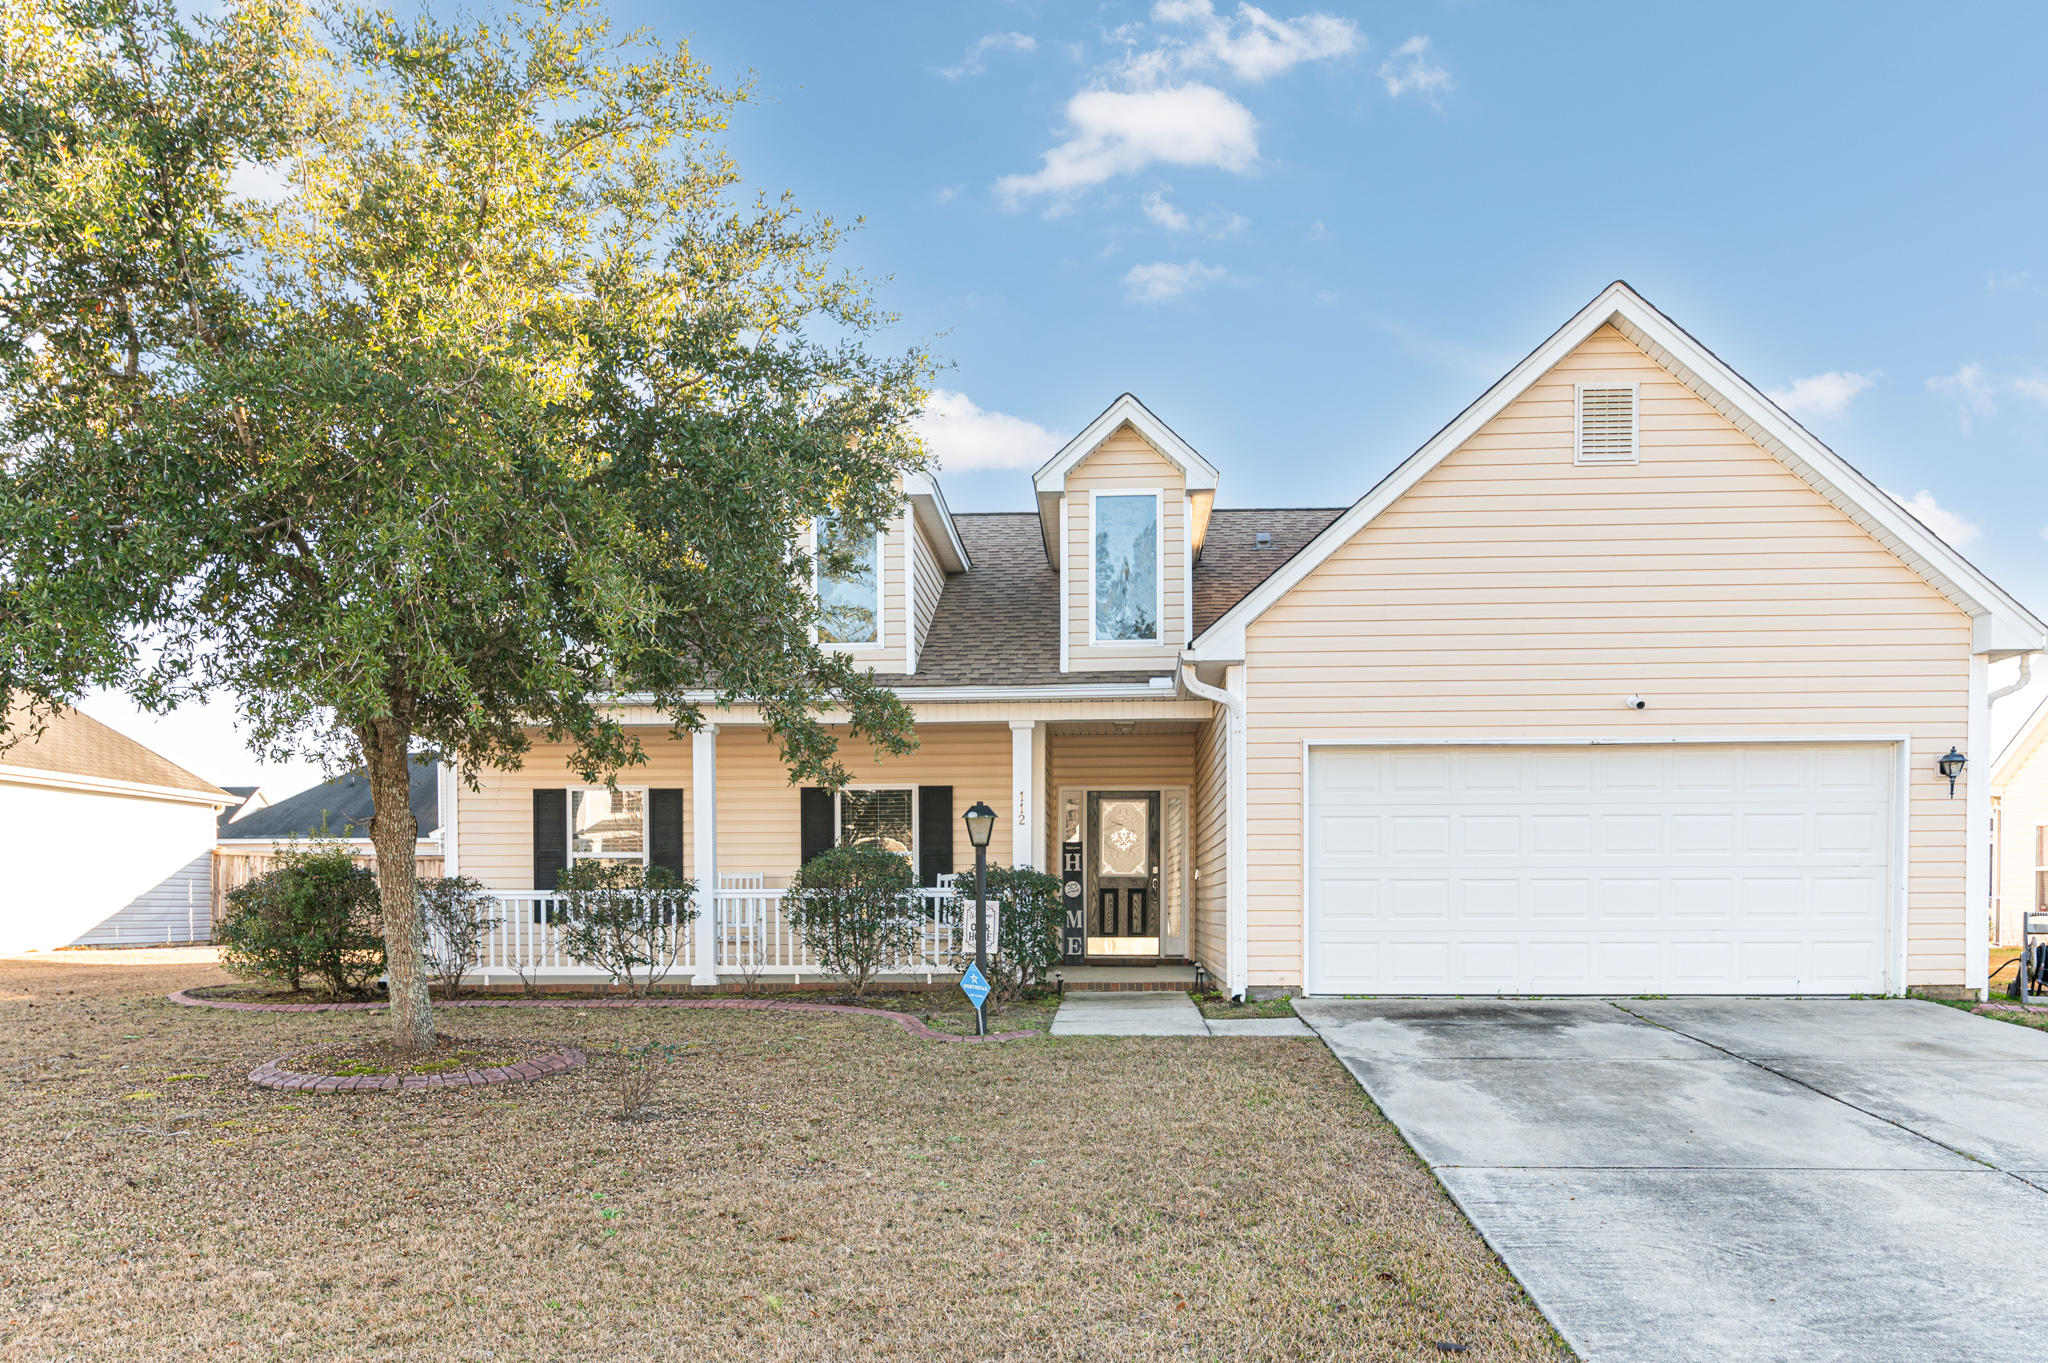 112 Spindle Way Goose Creek, SC 29445